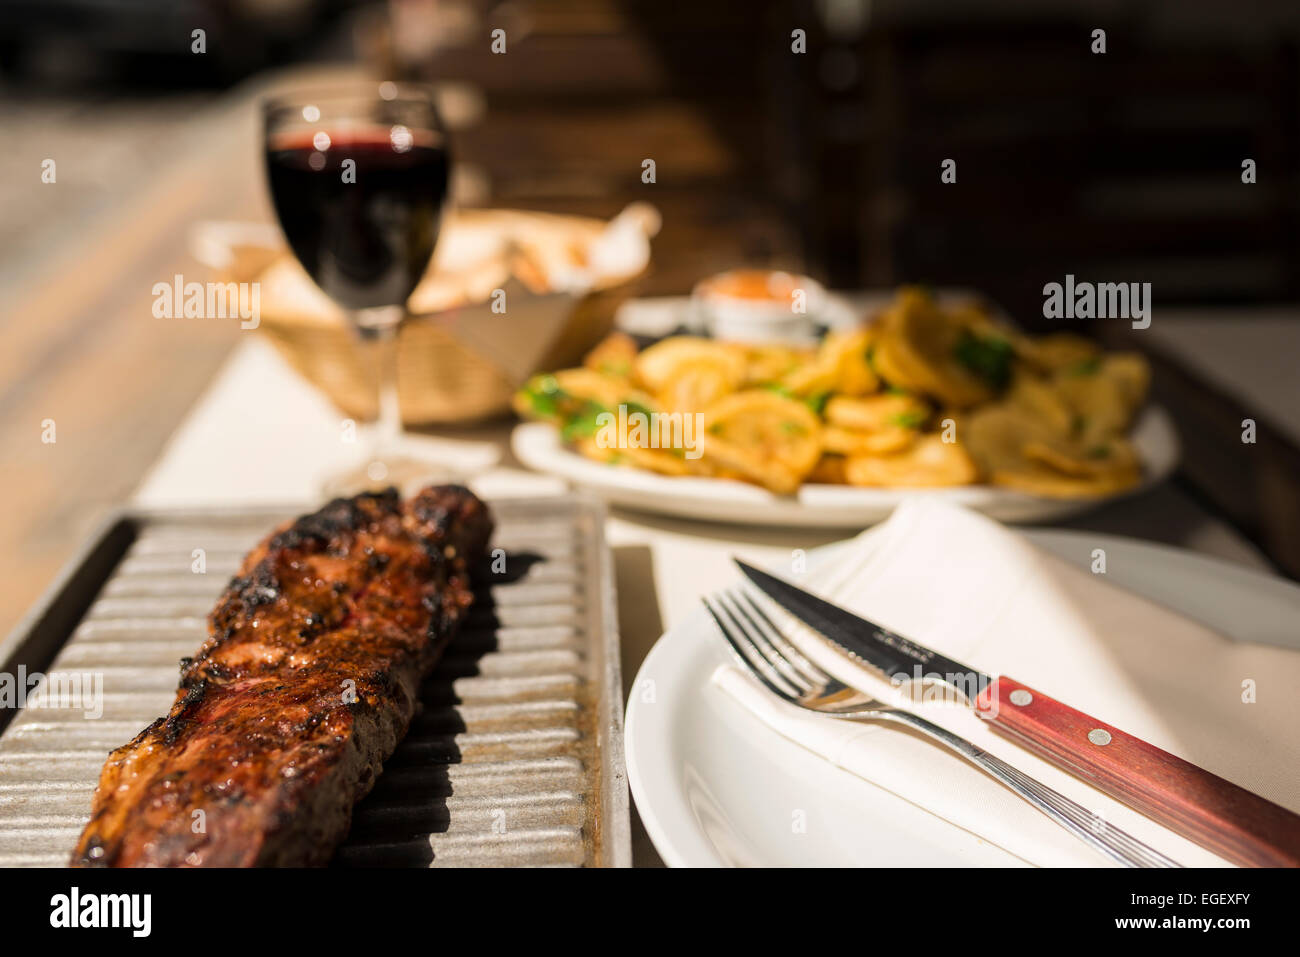 Steak meal at a traditional Parrillia, San Telmo, Buenos Aires, Argentina - Stock Image